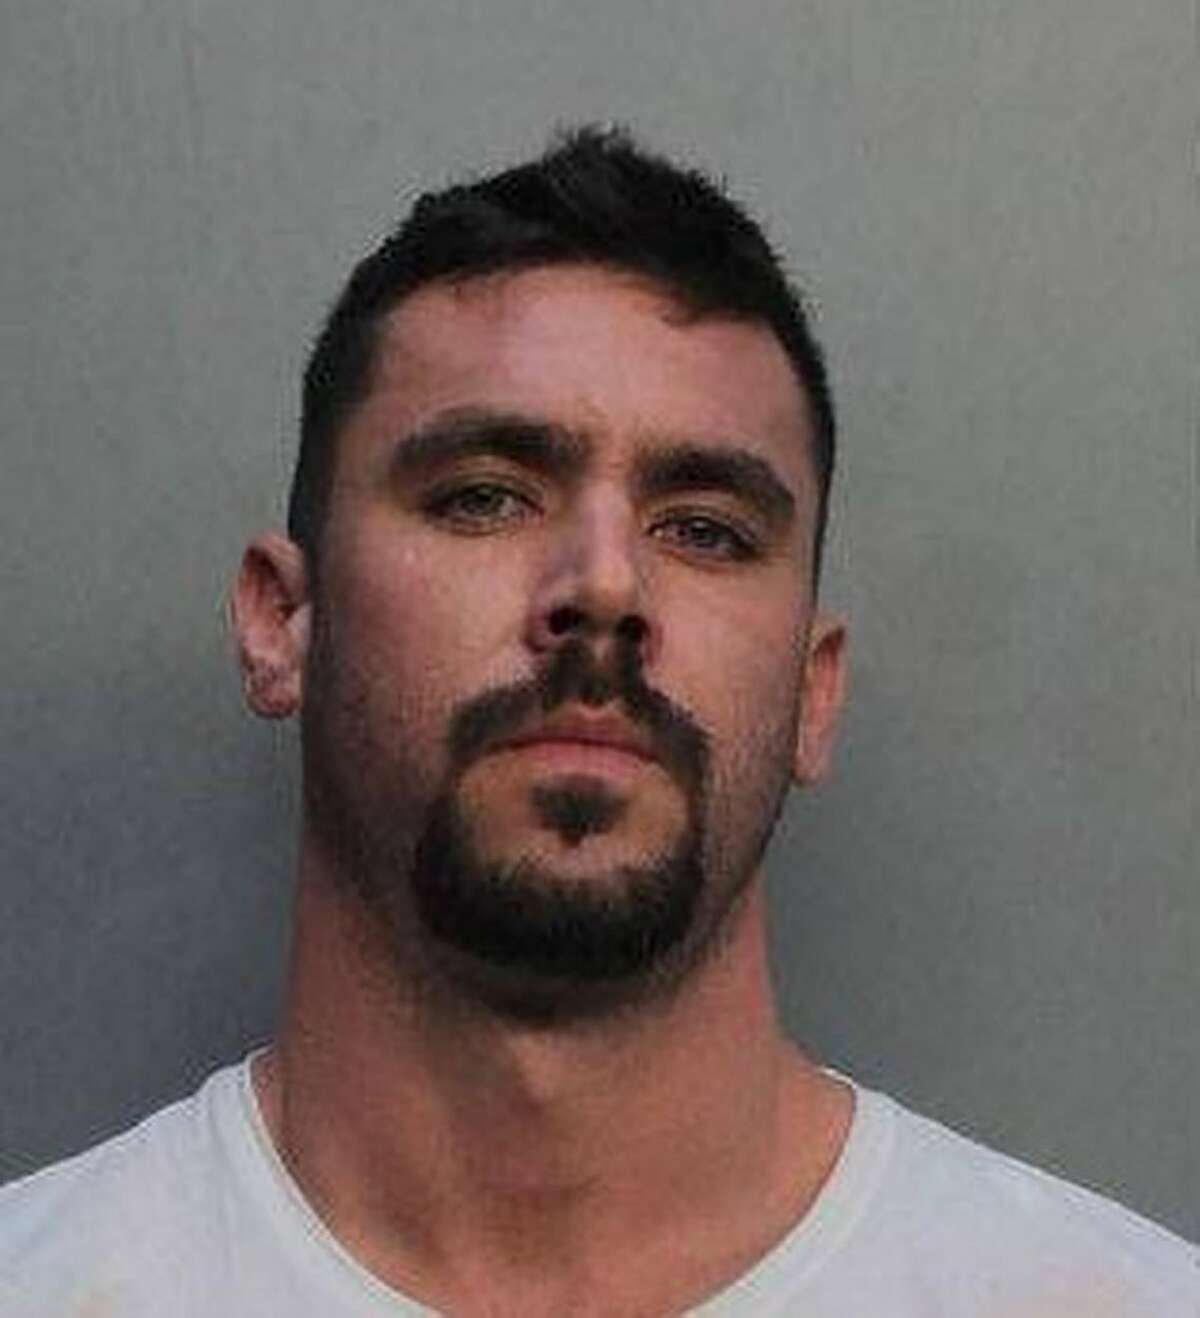 In an undated image provided by Miami-Dade County Department of Corrections, David T. Hines. Hines, 29, was arrested and charged with three felonies after spending relief money on a Lamborghini, clothes and jewelry, federal prosecutors said. (Miami-Dade County Department of Corrections via The New York Times) -- FOR EDITORIAL USE ONLY. --